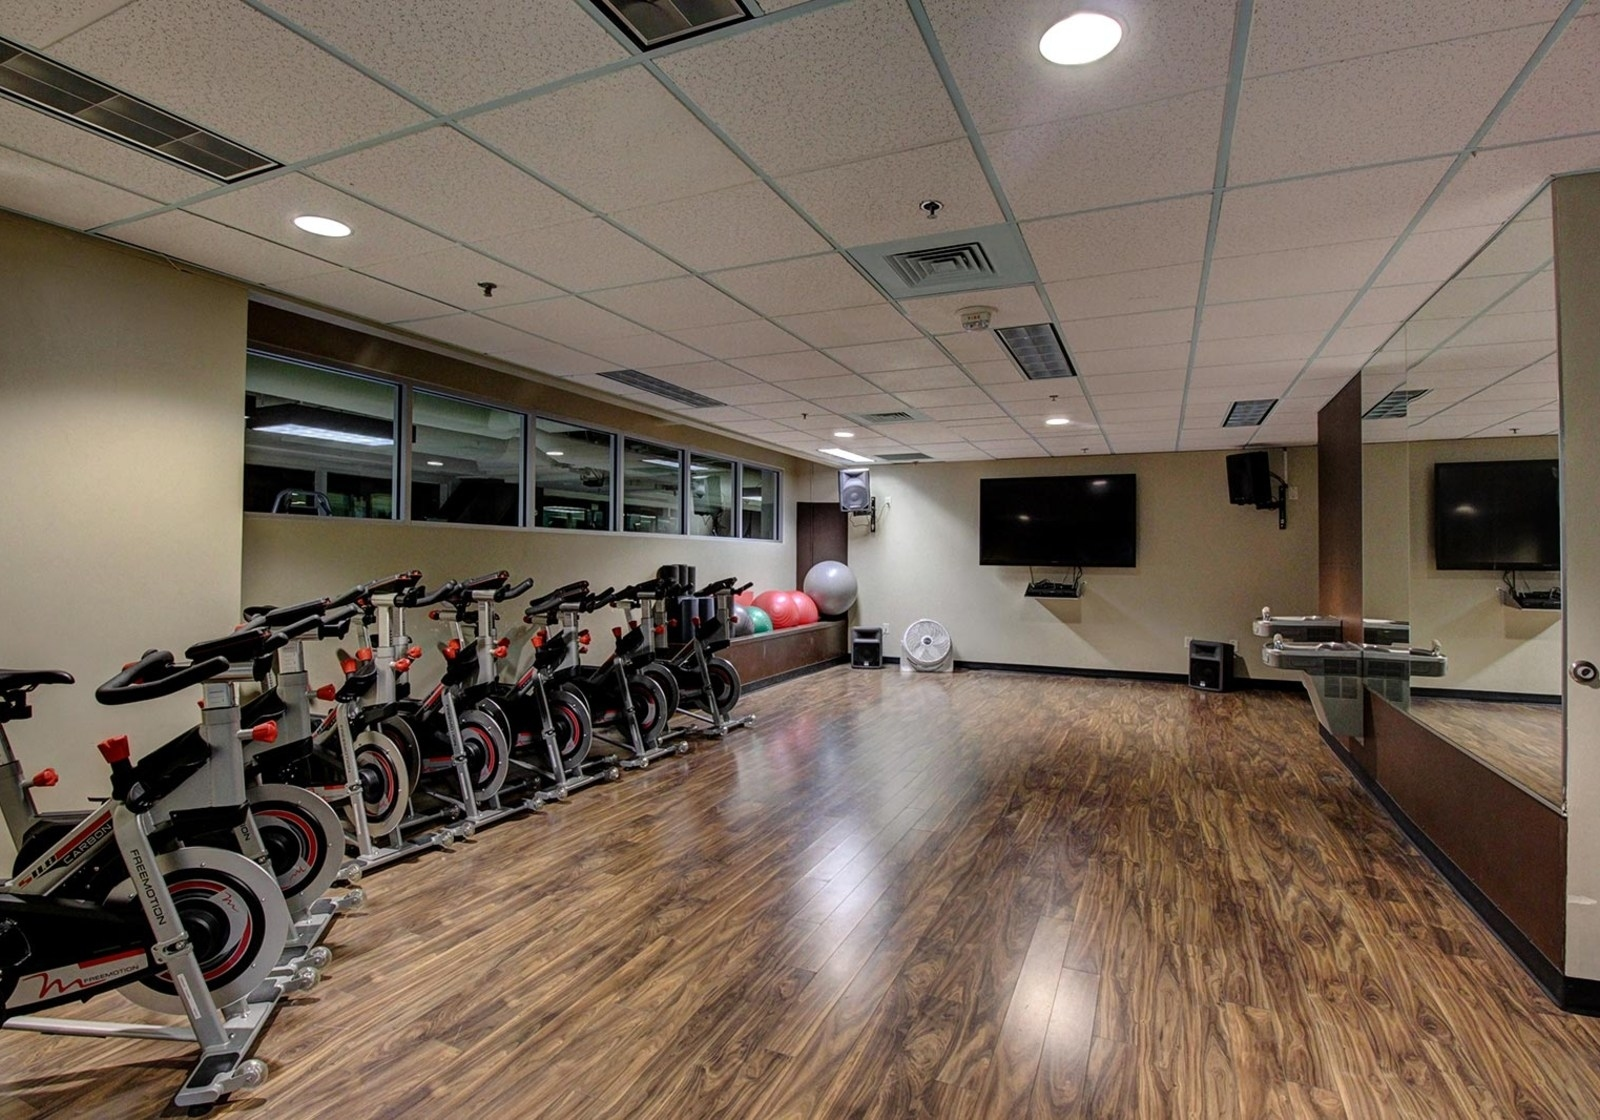 a row of indoor exercise bikes